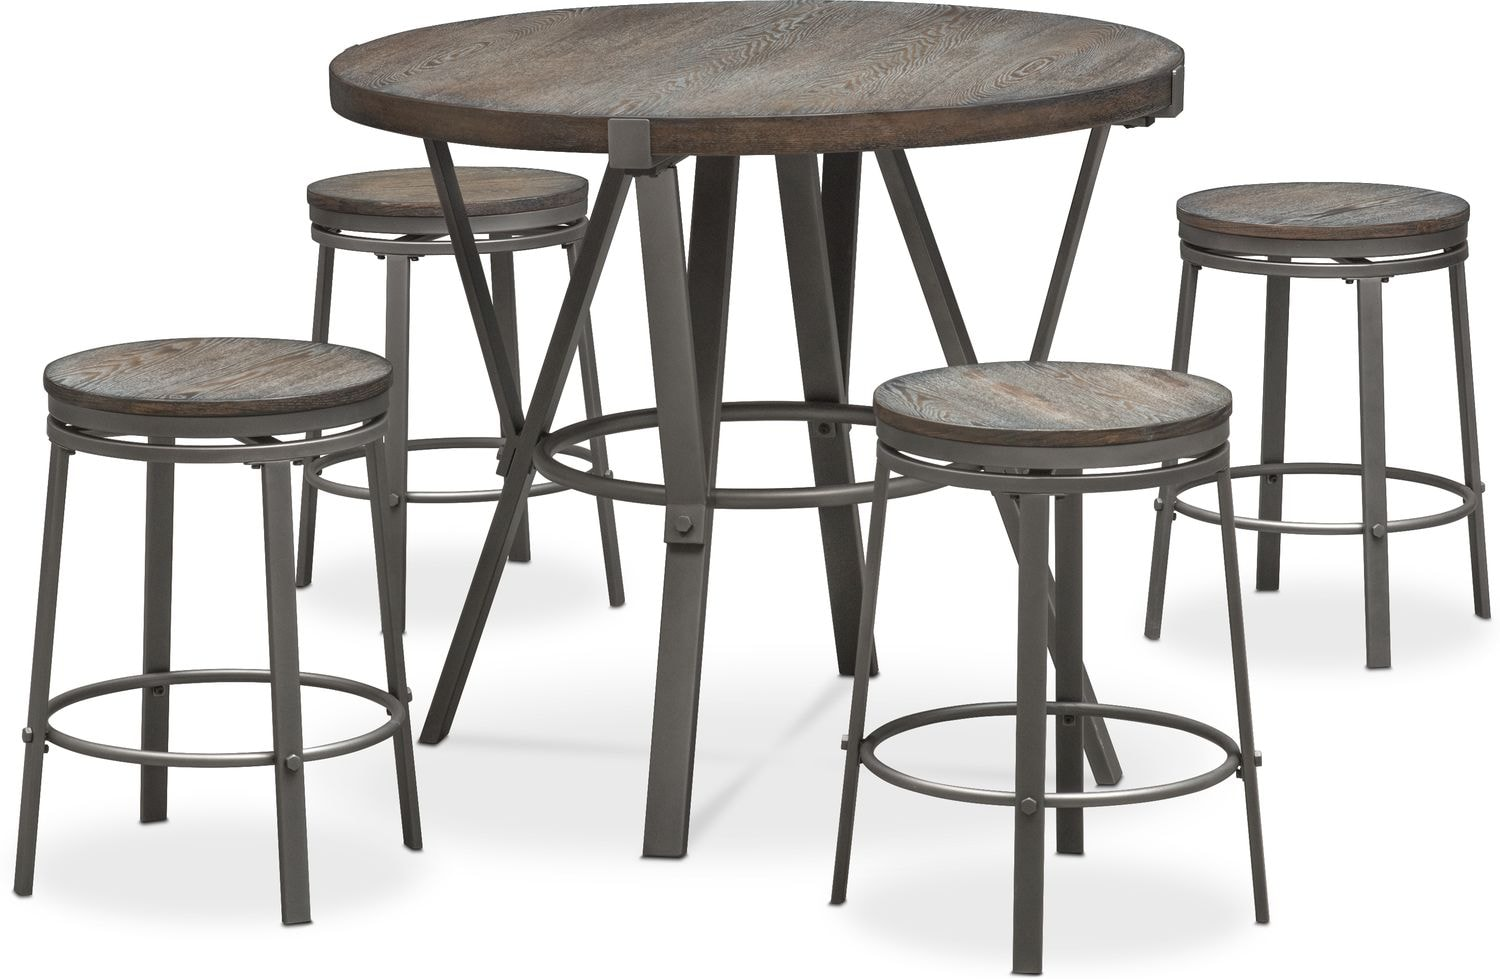 Dining Room Furniture - Stratton Counter-Height Table and 4 Stools